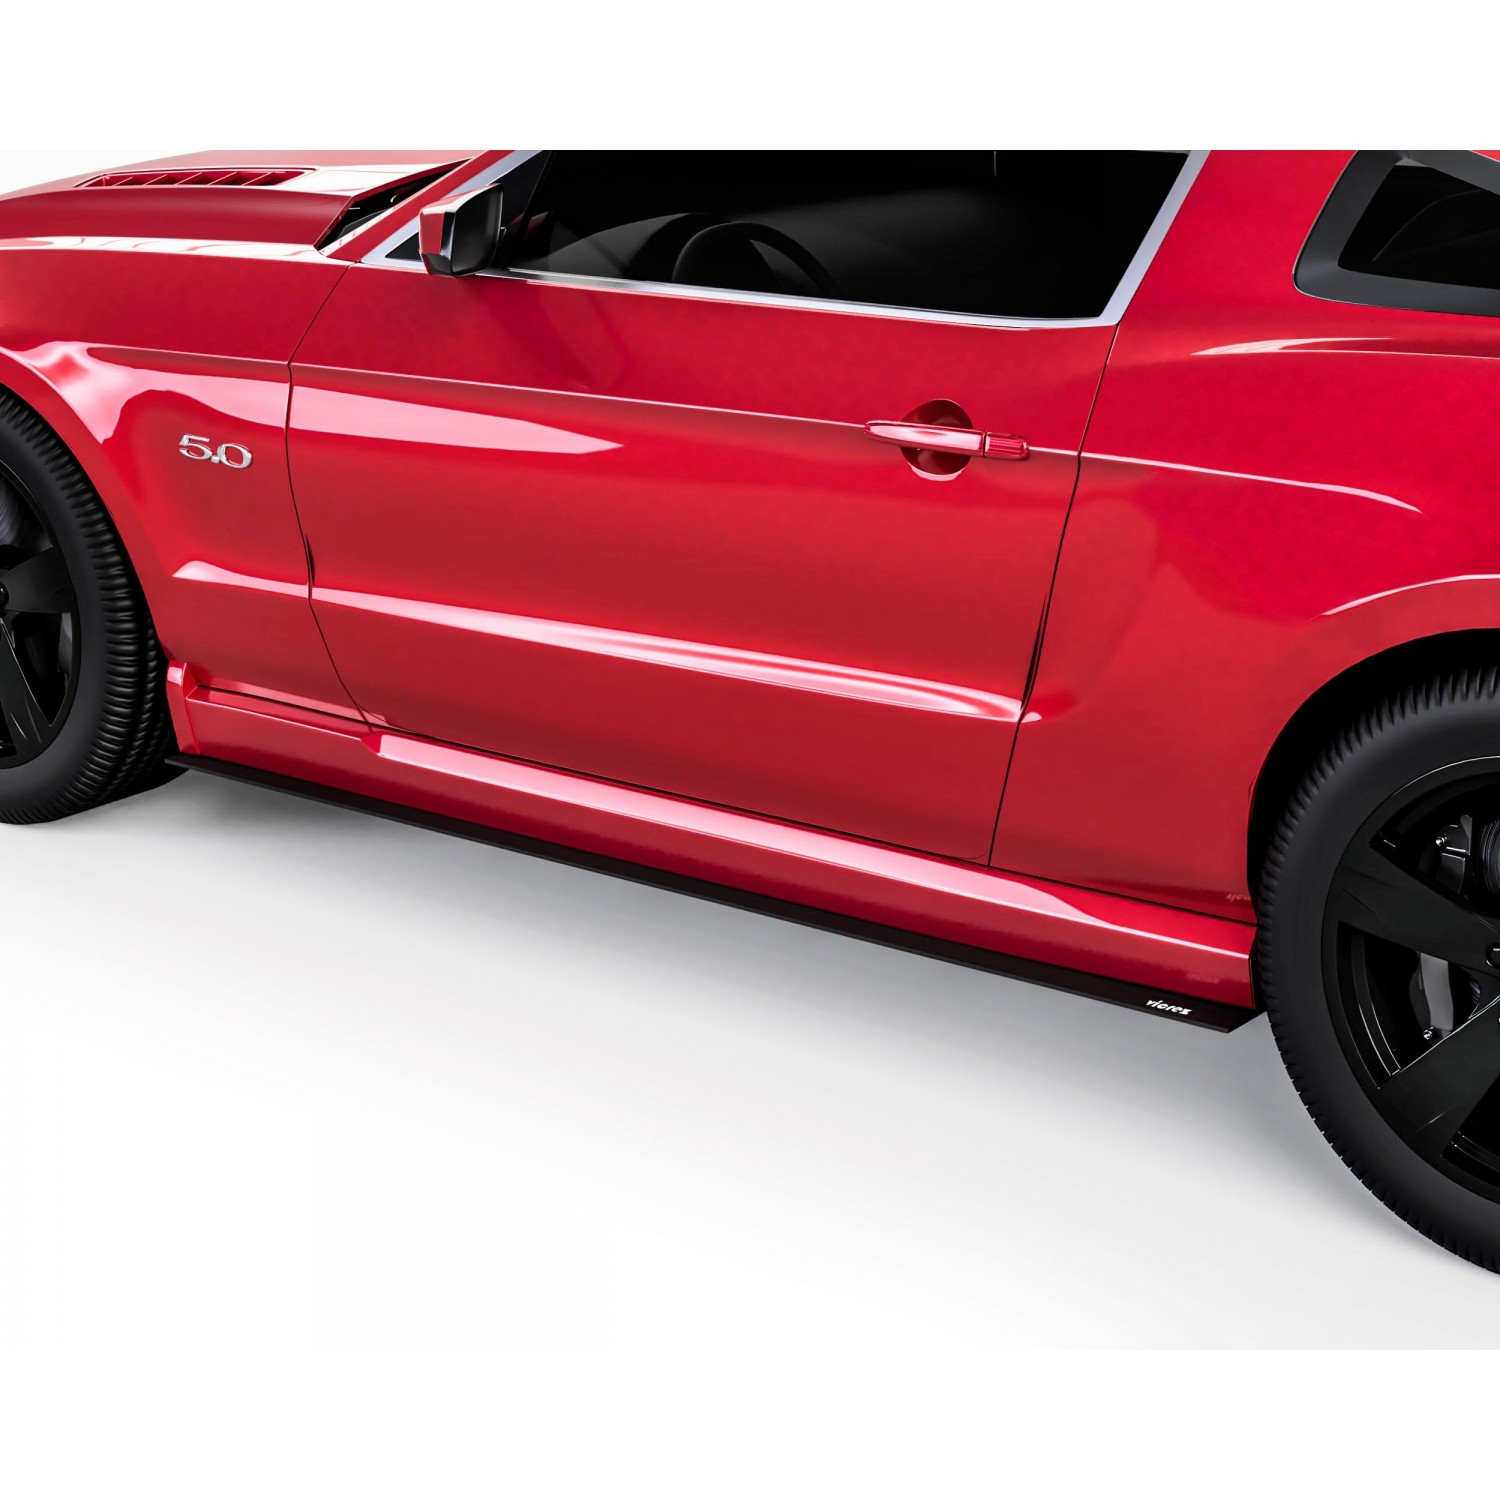 Vicrez V1R Side Skirt Splitters vz101603 | Ford Mustang 2005-2014